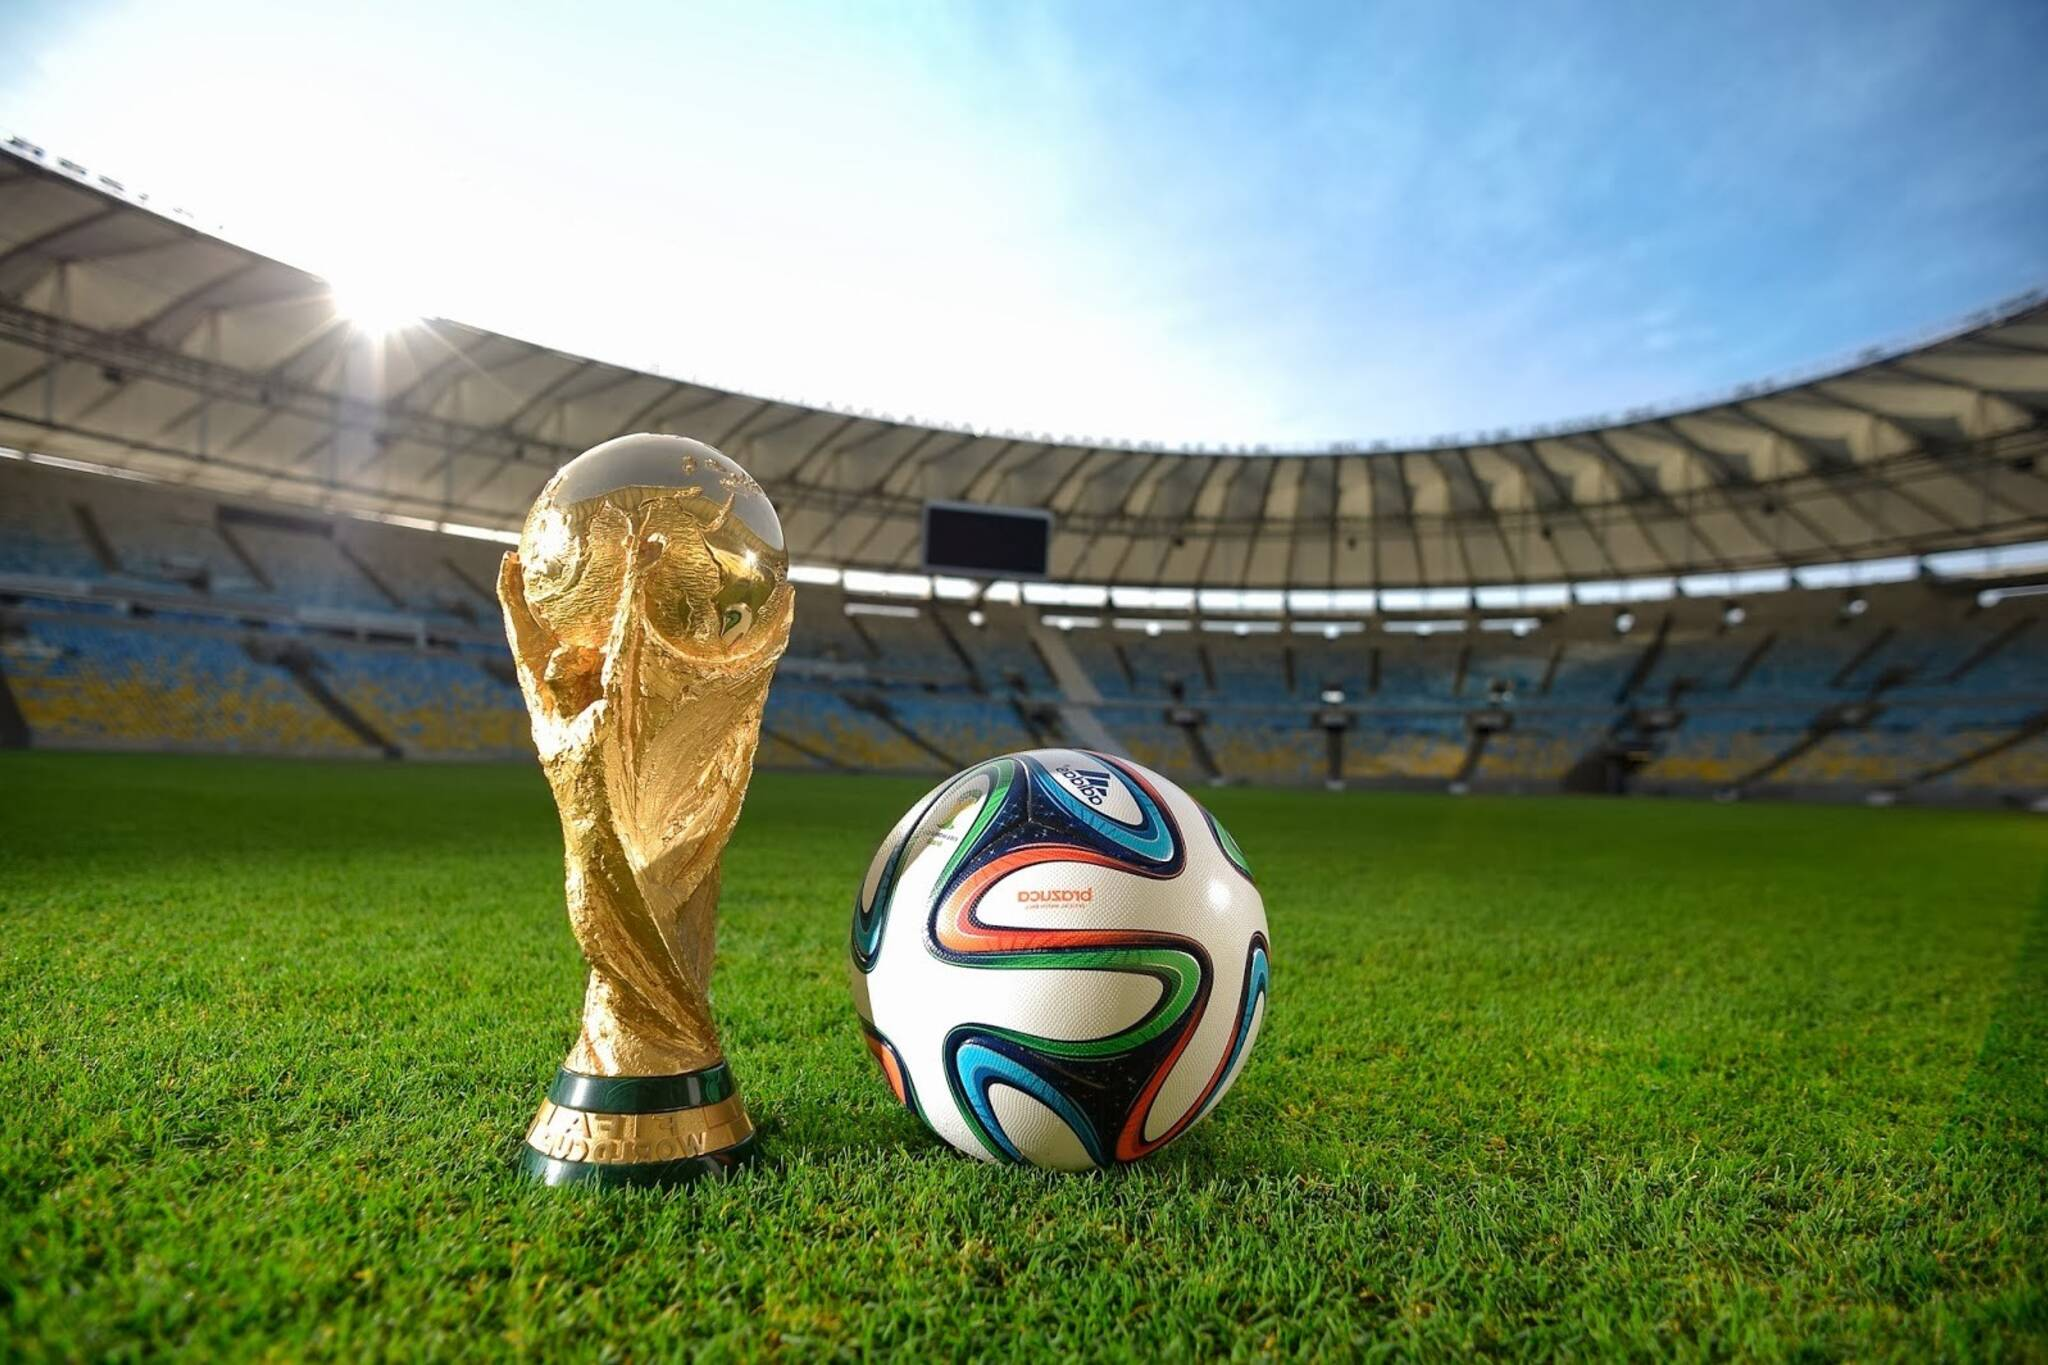 World Cup Canada Cmd Resize Crop Quality 70 Height Original Fifa Trophy Arrives Nigeria Today